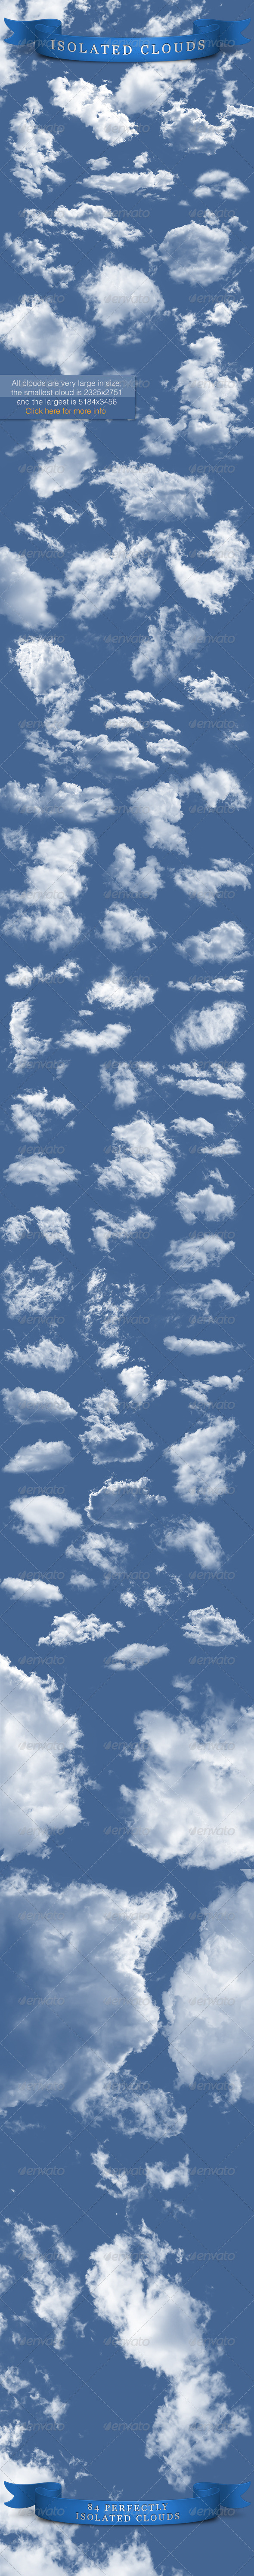 Isolated Clouds Bundle - Nature & Animals Isolated Objects